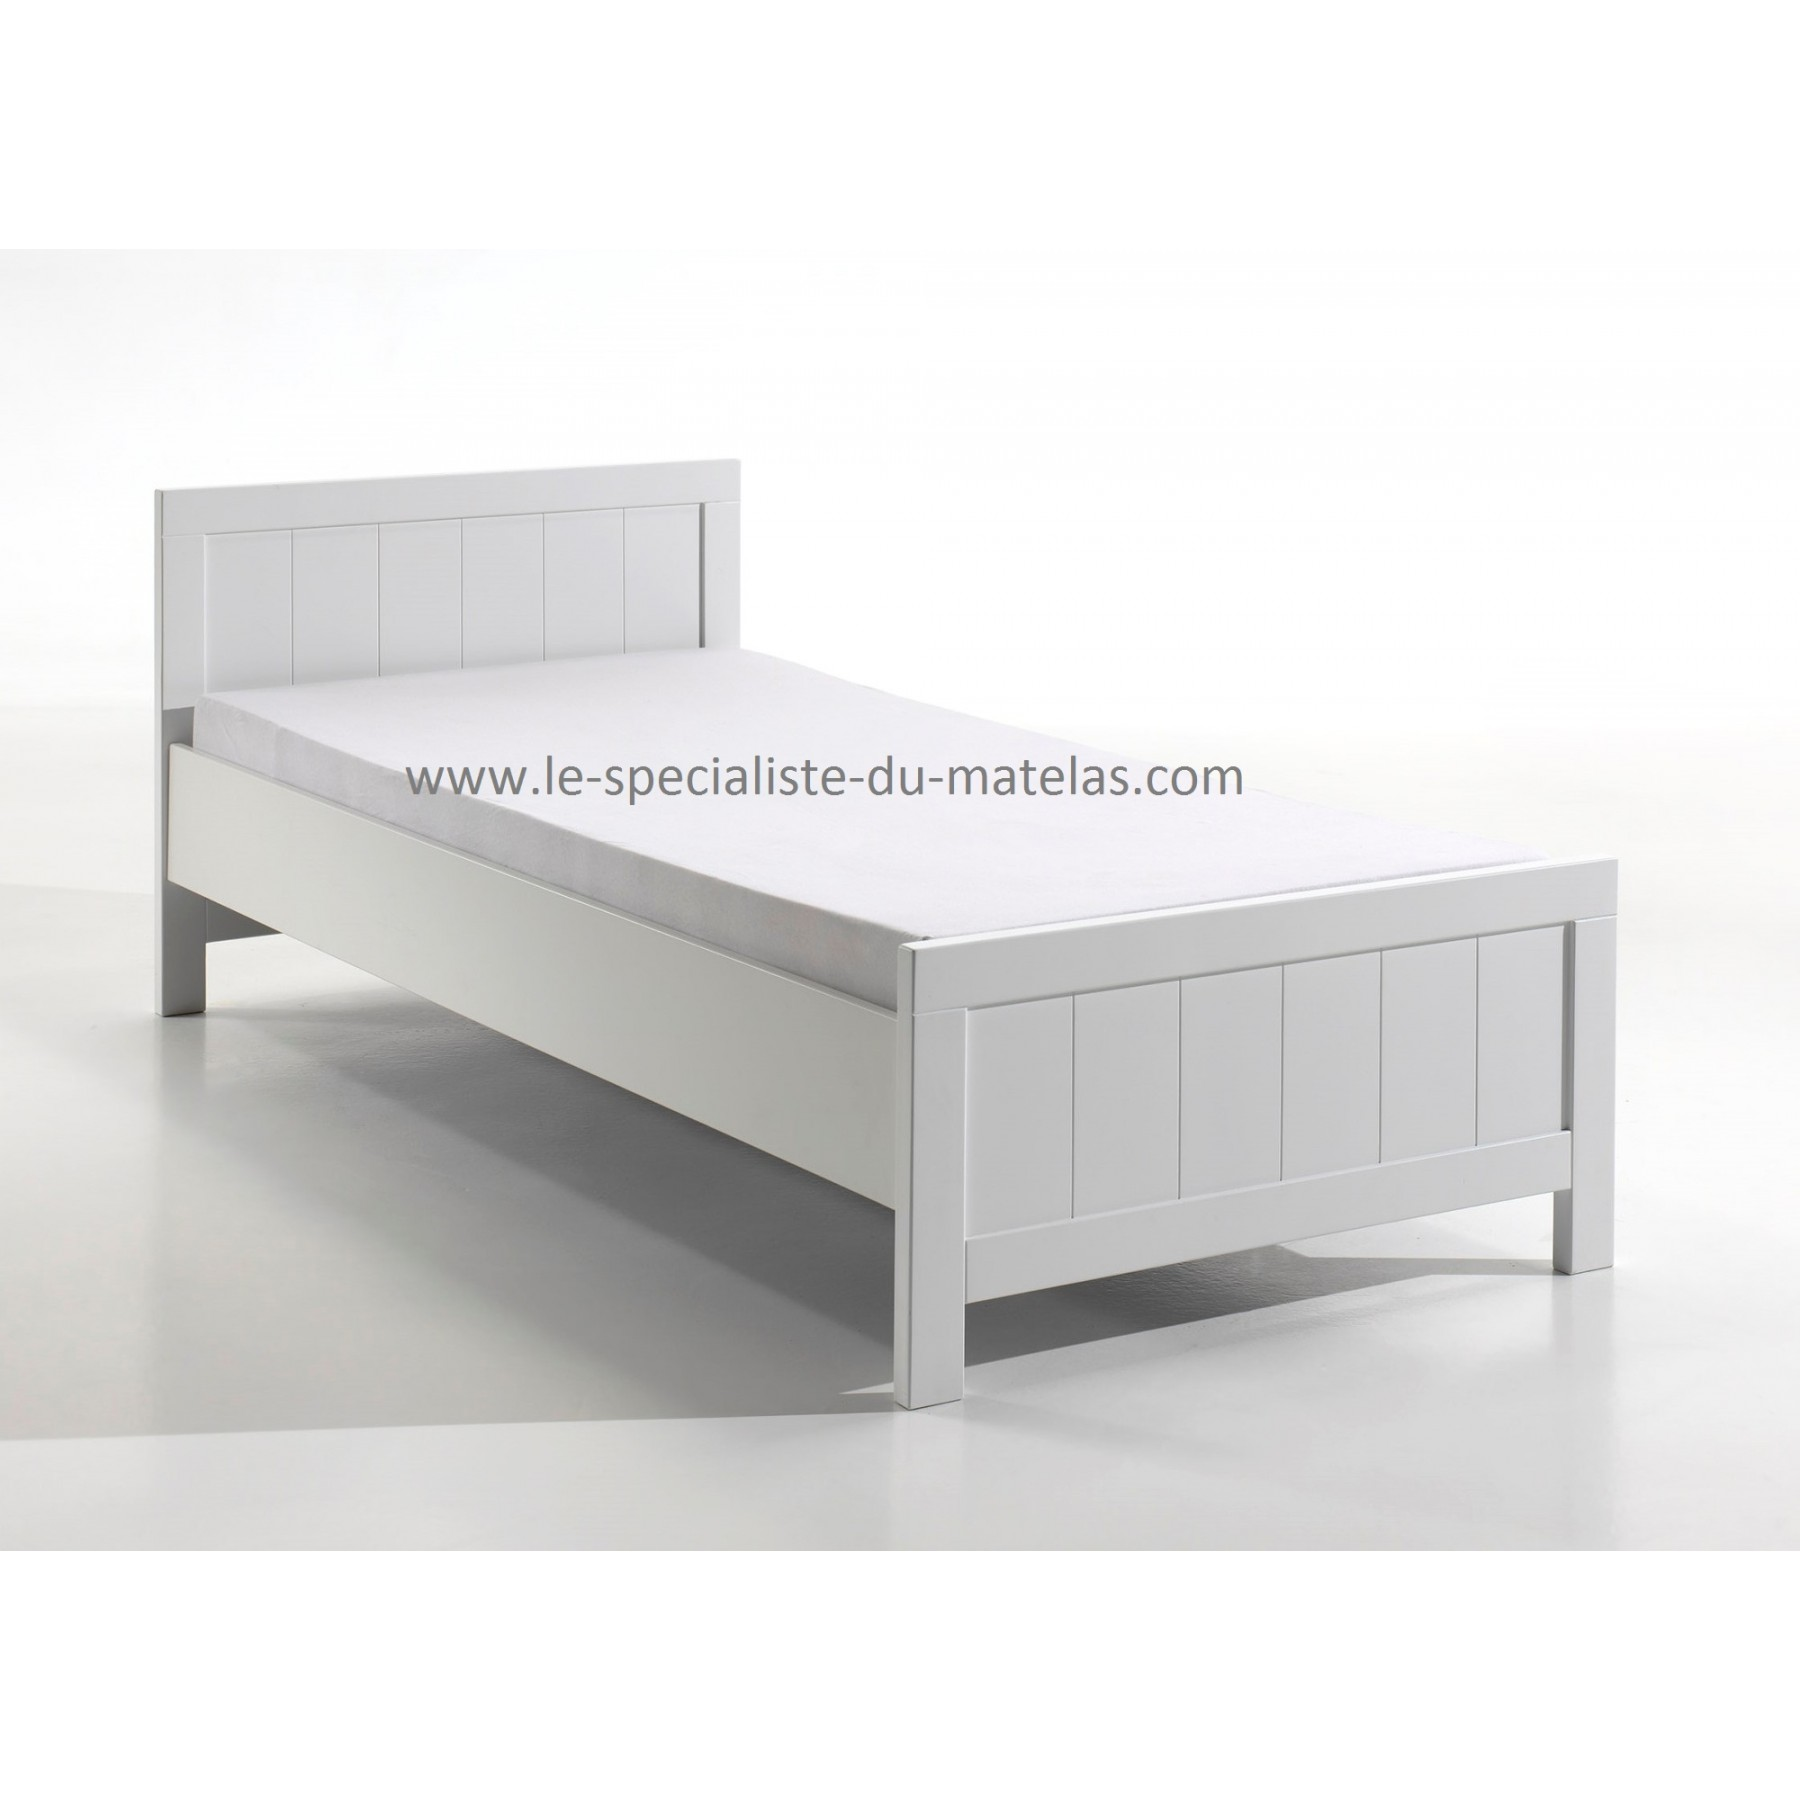 lit enfant laqu blanc en mdf et pin massif. Black Bedroom Furniture Sets. Home Design Ideas